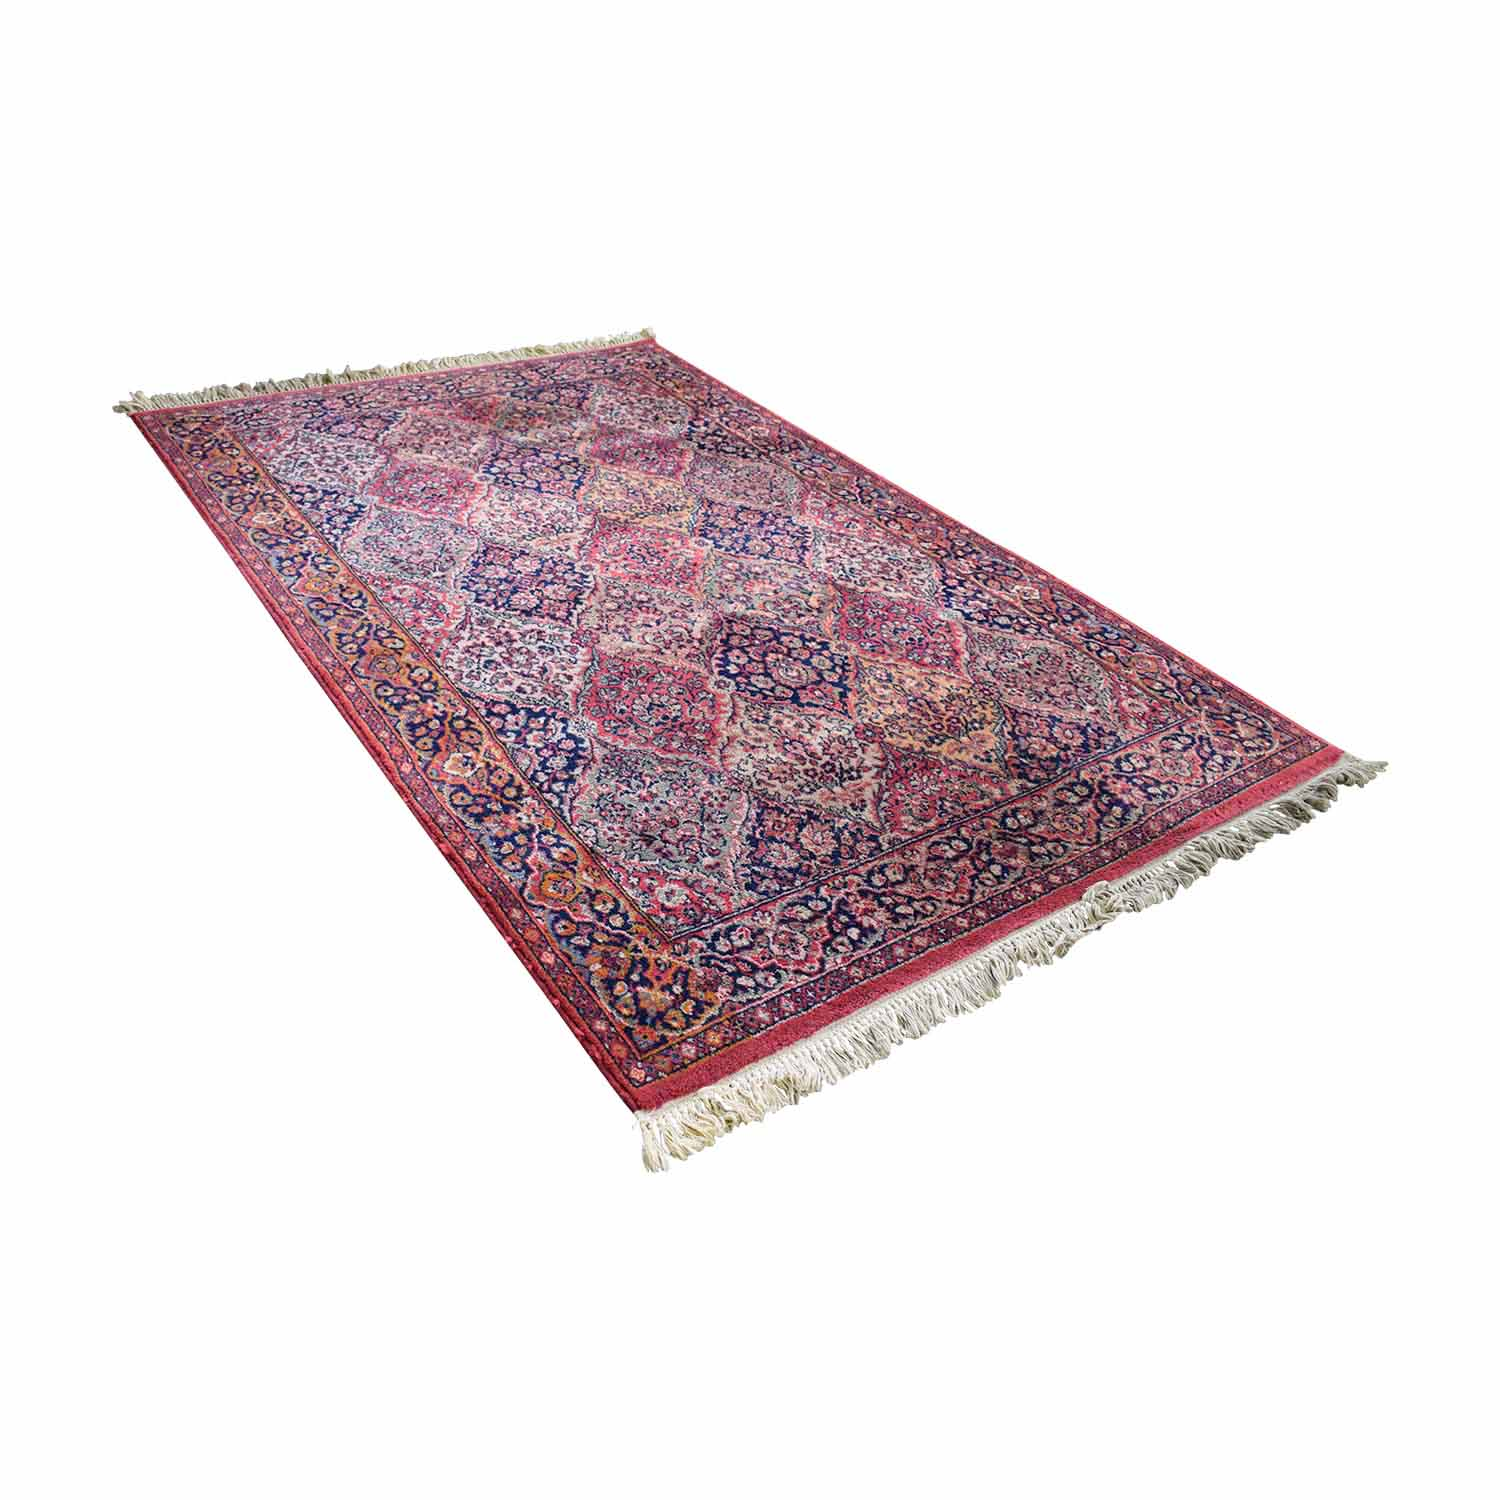 Sears Sears Kismet Red and Blue Multi-Colored Oriental Rug price